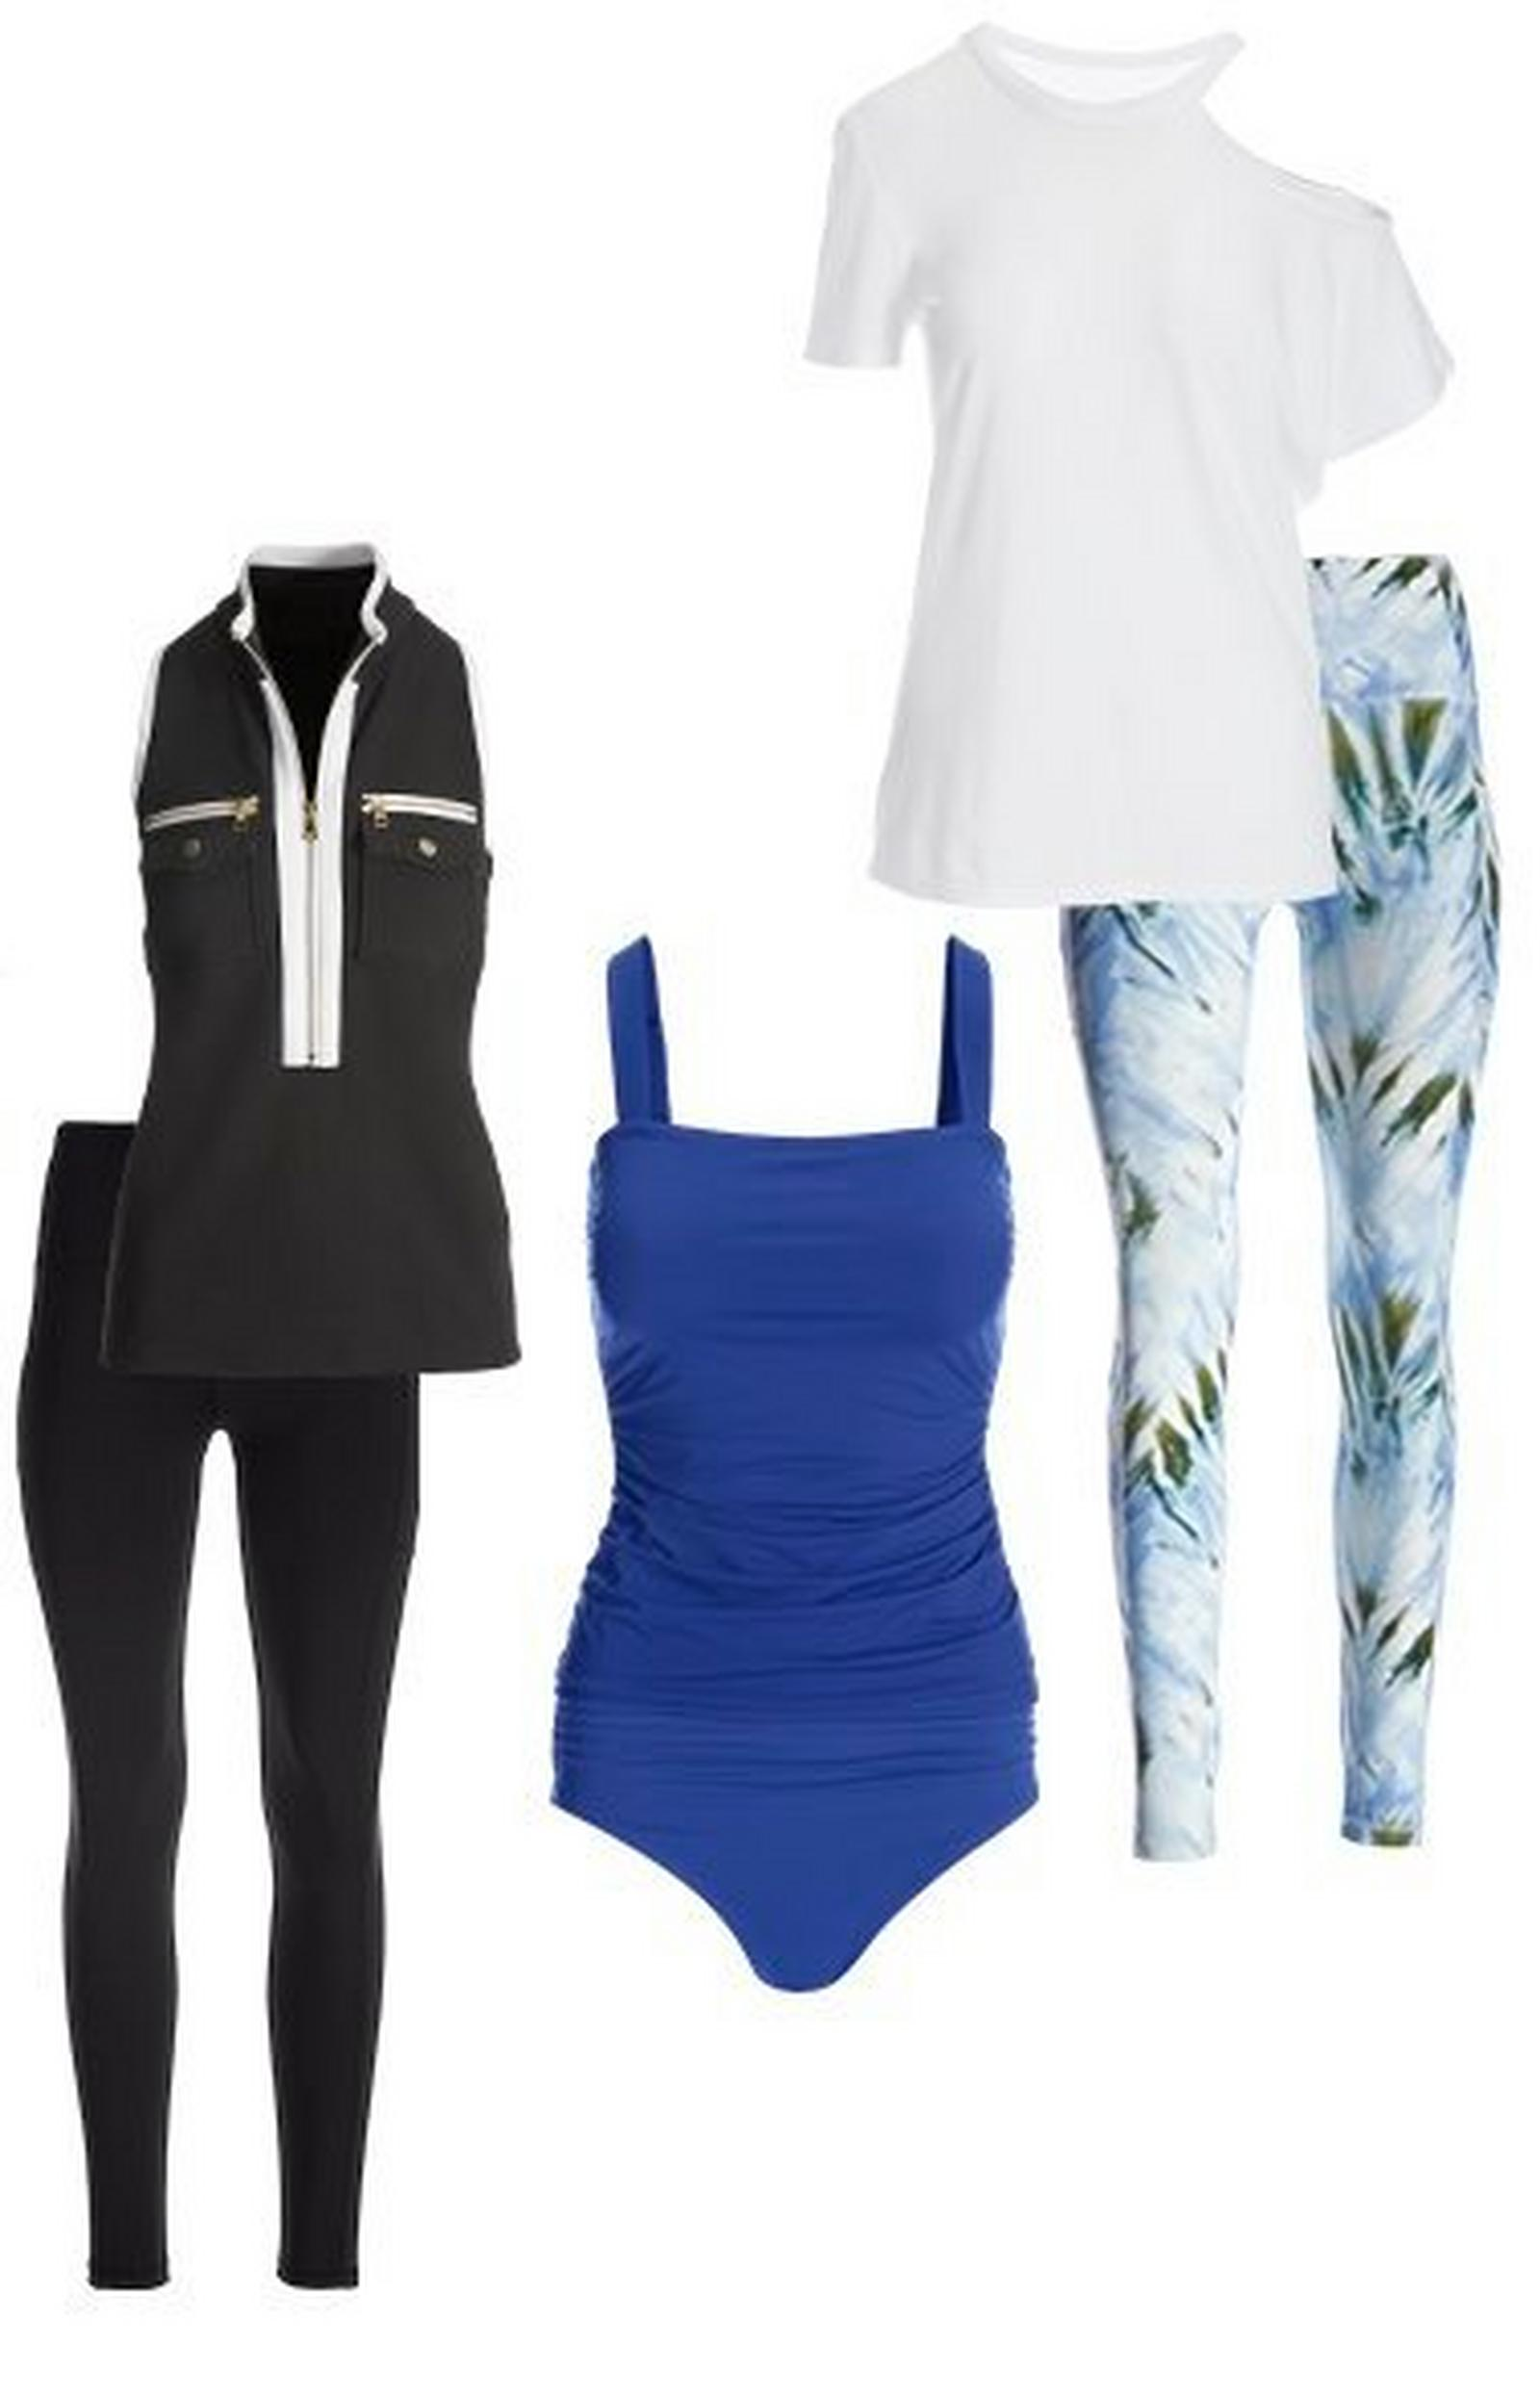 three sets shown: black sleeveless chic zip sport top and black leggings, navy blue tankini set, white off-the-shoulder tee and blue and green tie-dye leggings.